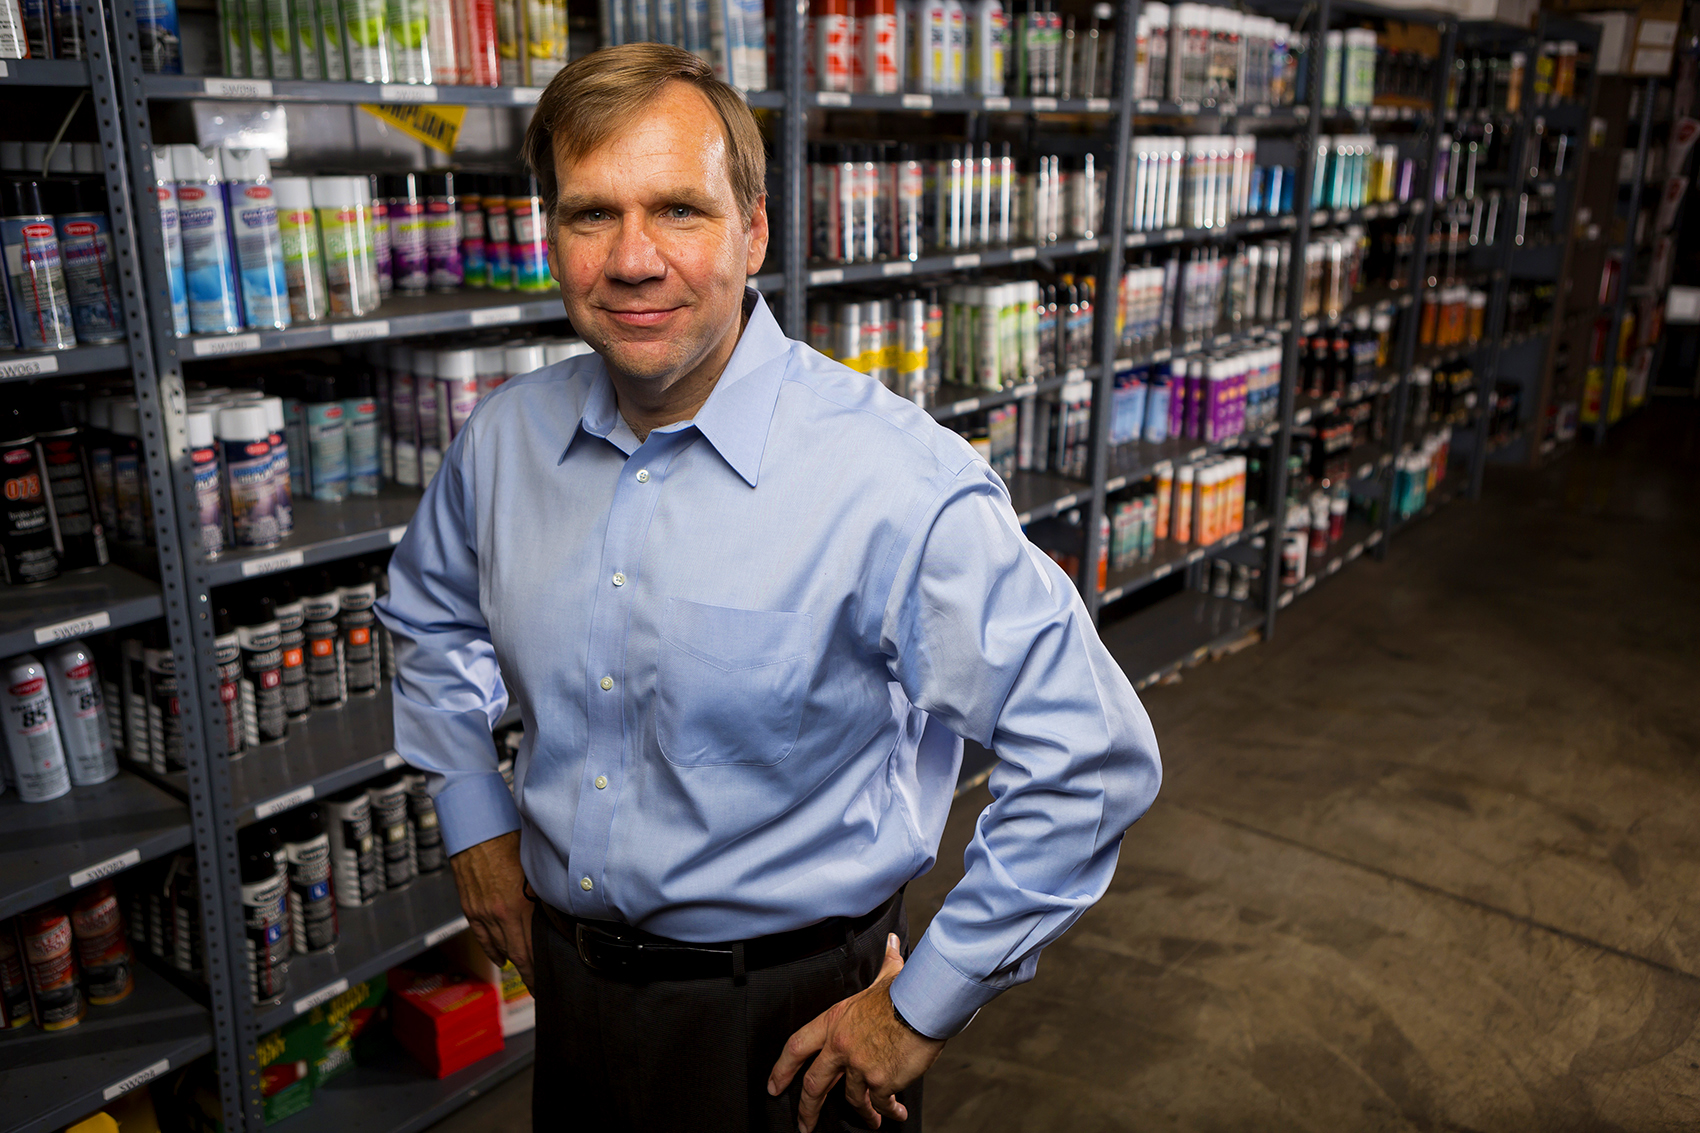 Ed Byczynski, President and CEO of PLZ Aeroscience Corporation poses for a portrait at their distribution center in Addison, Il on July 31, 2015. Manuel Martinez/ Crains Chicago Business